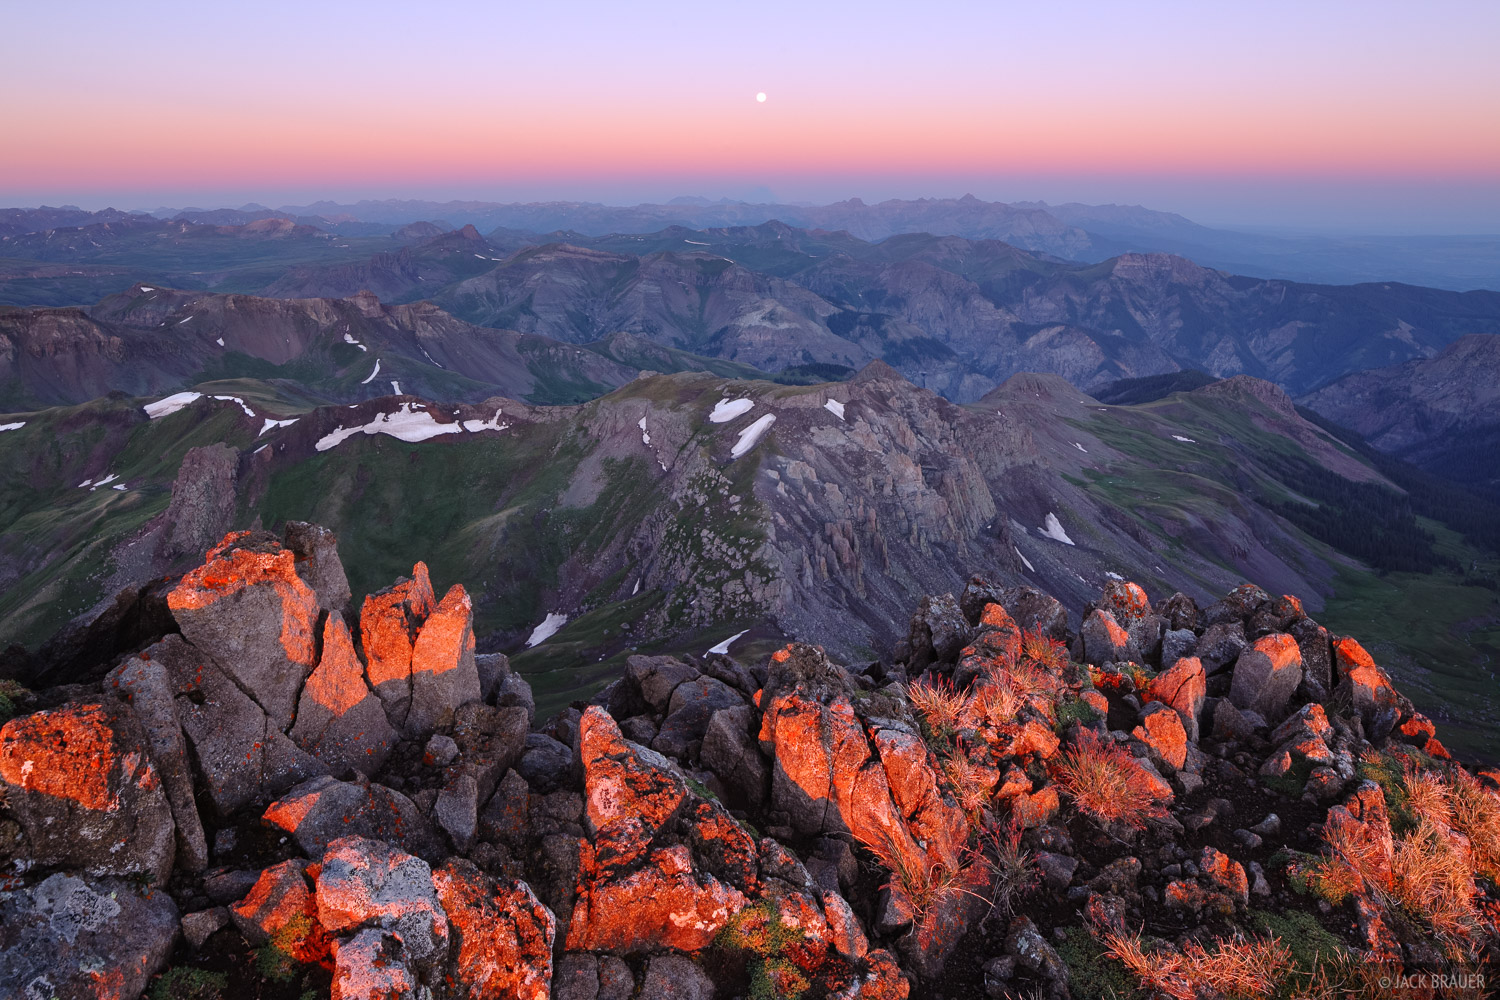 Sunrise over the San Juans, as seen from the summit of Wetterhorn Peak.  At 14,015 ft. the summit rocks of Wetterhorn are...